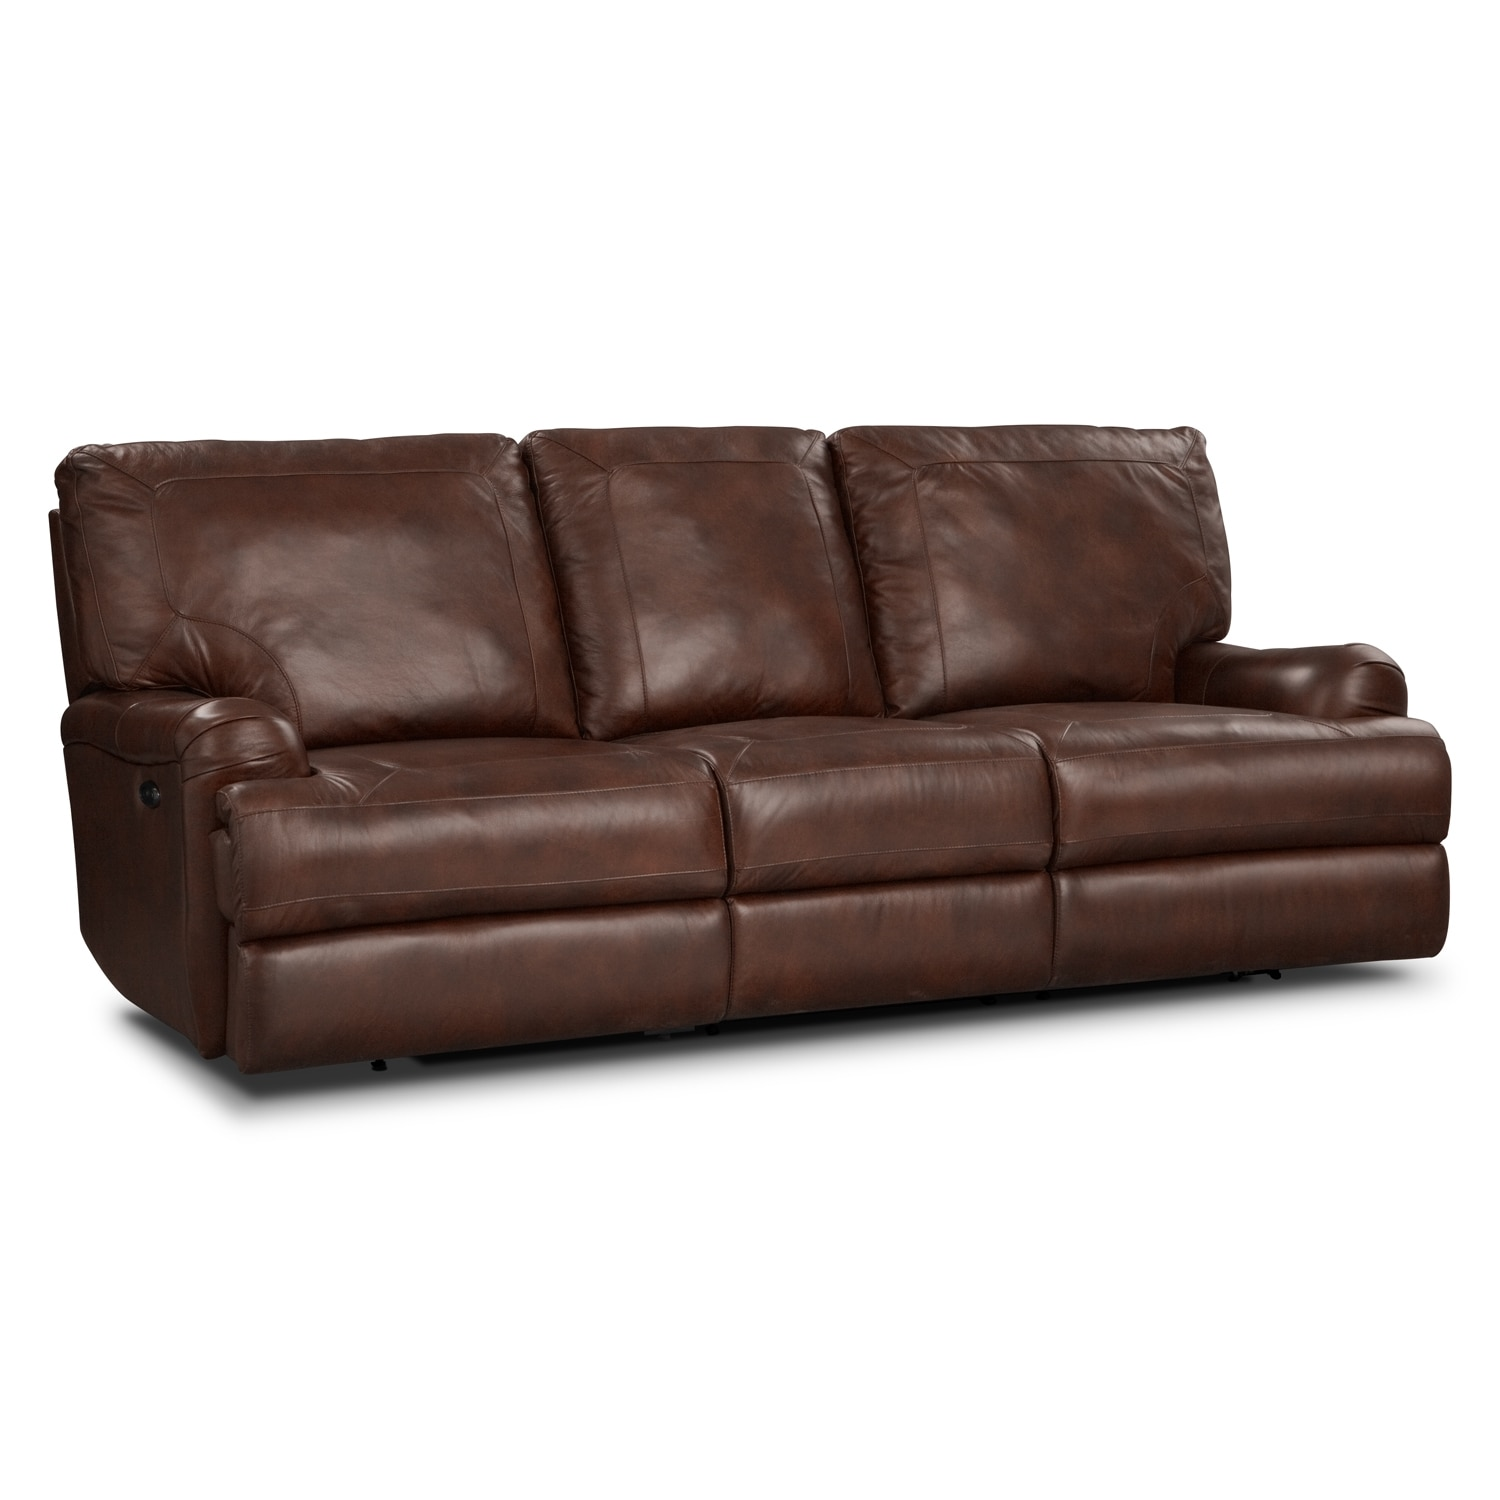 Kingsway leather power reclining sofa value city furniture Power reclining sofas and loveseats